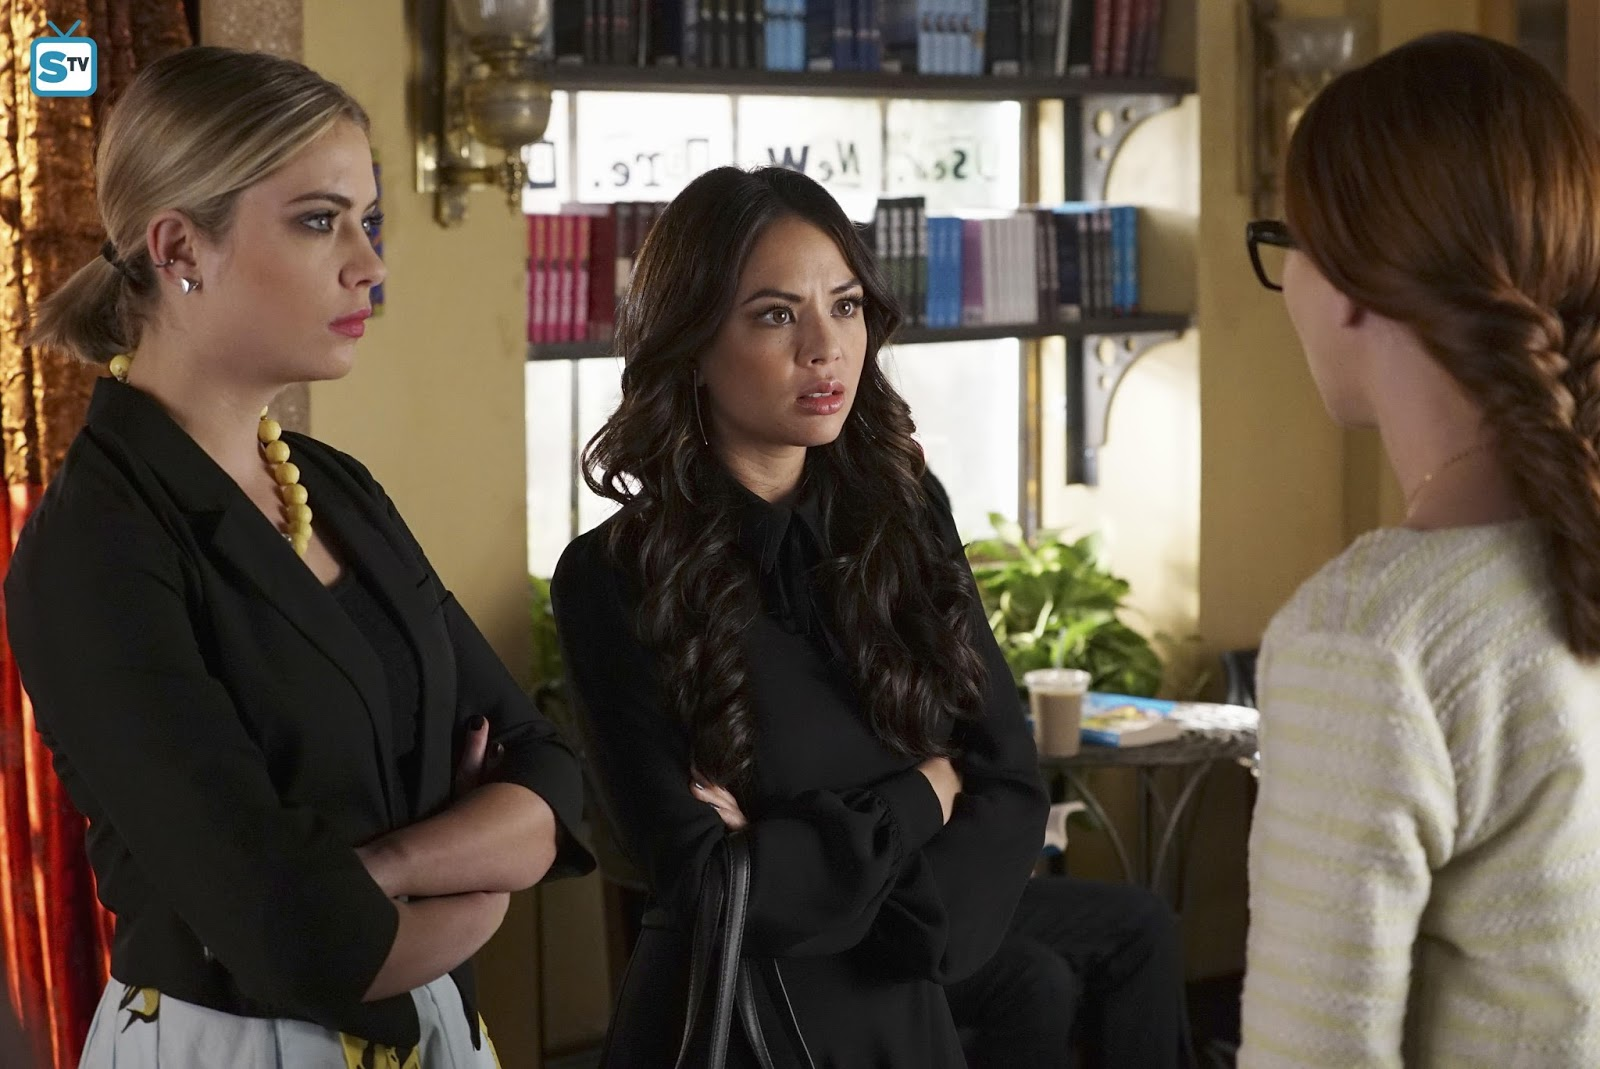 Pretty little liars quot recap 6 01 escape from the dollhouse page 7 - Pretty Little Liars She S No Angel Review Heart Stopping Show Stopper